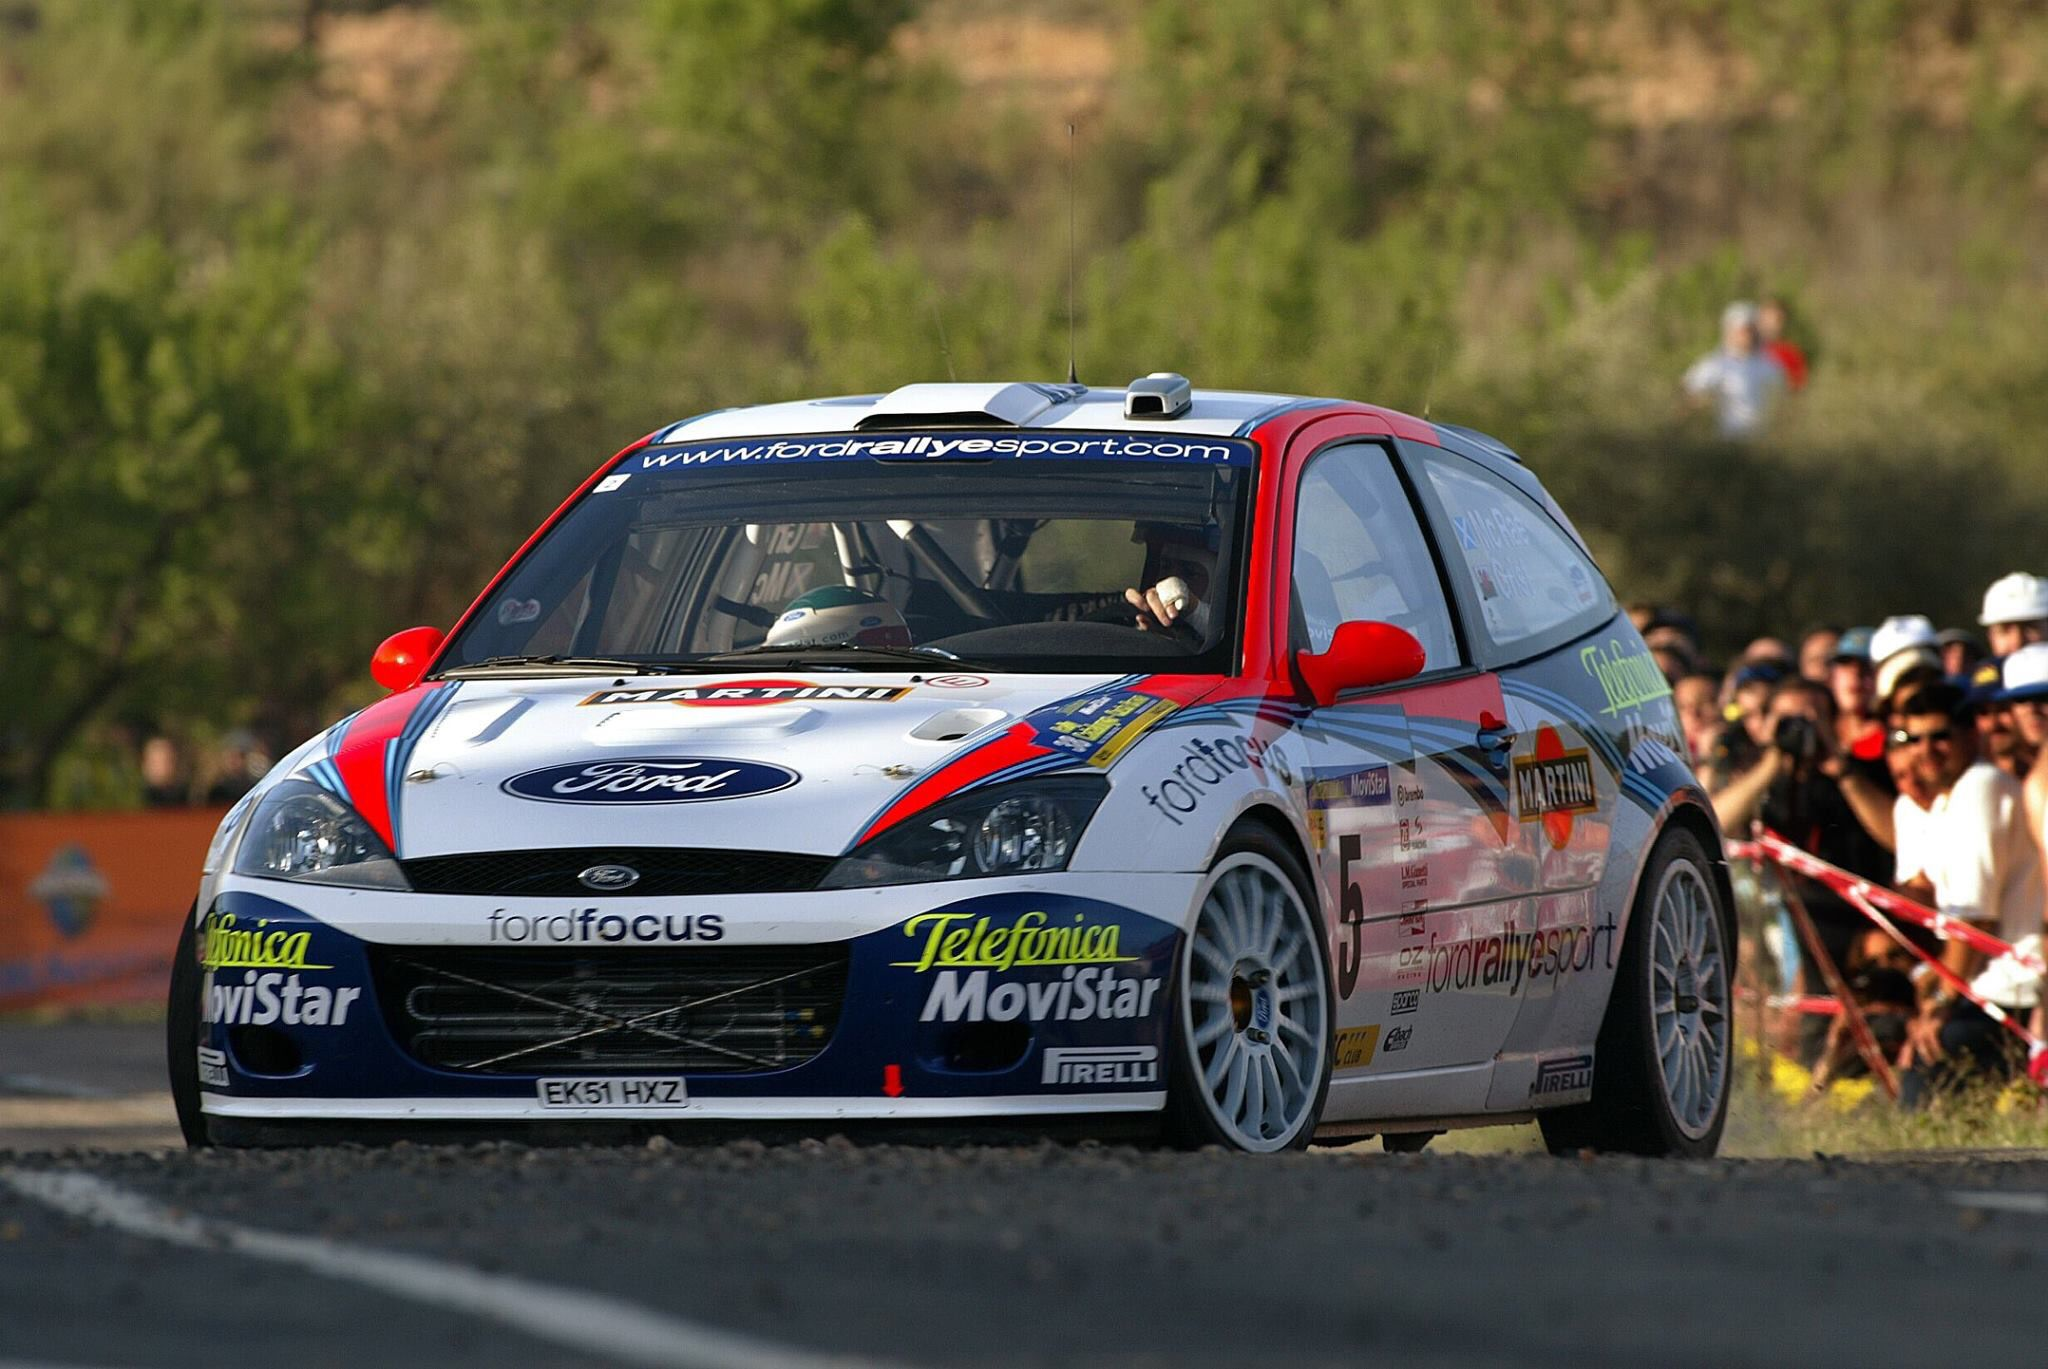 Ford Focus Wrc Collin Mcrae Rally Ford Motorsport Ford Focus